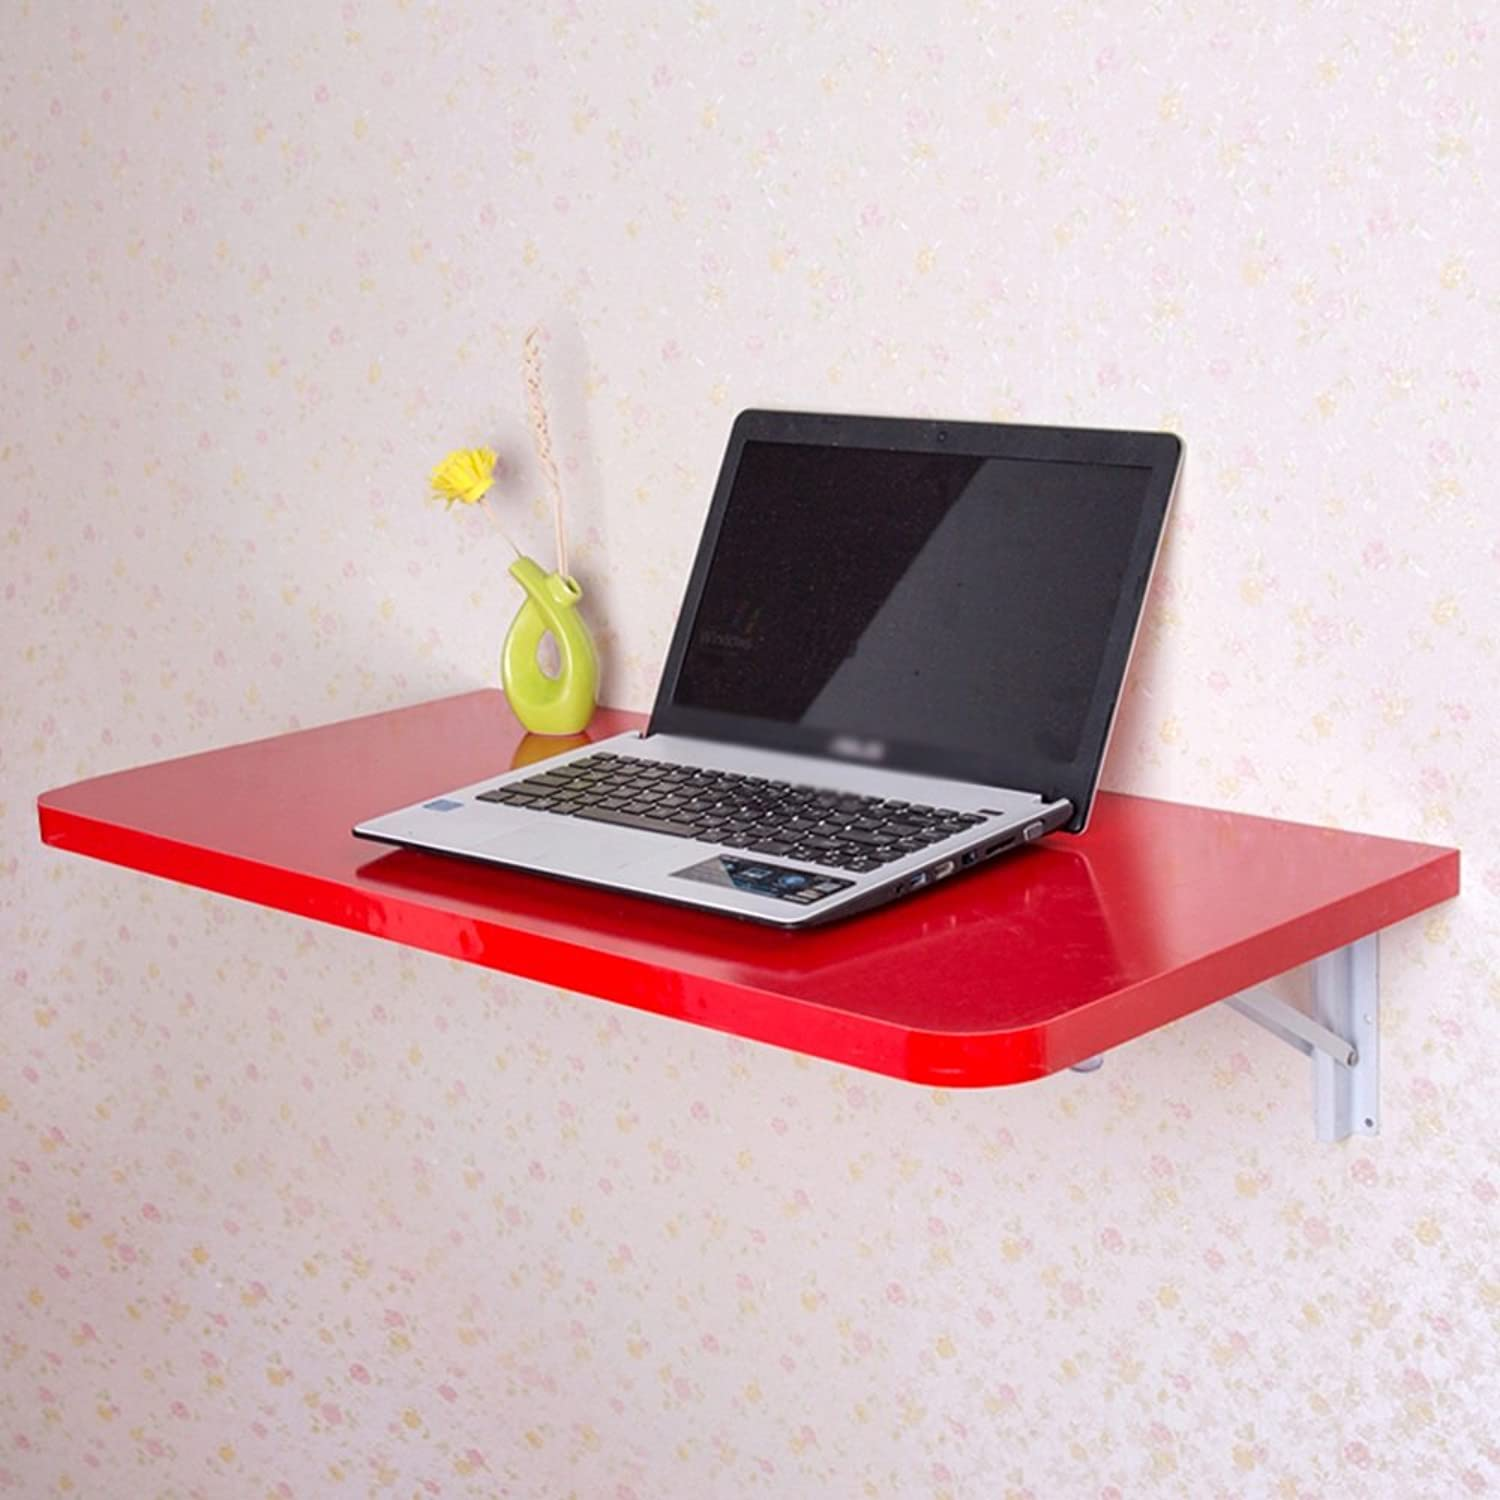 Djyyh Folding Table Small Size Computer Table Wall-Mounted Desk Notebook Desk Drop Leaf Dining Table 4 Size 5 colors Optional (color   D, Size   50  30cm)